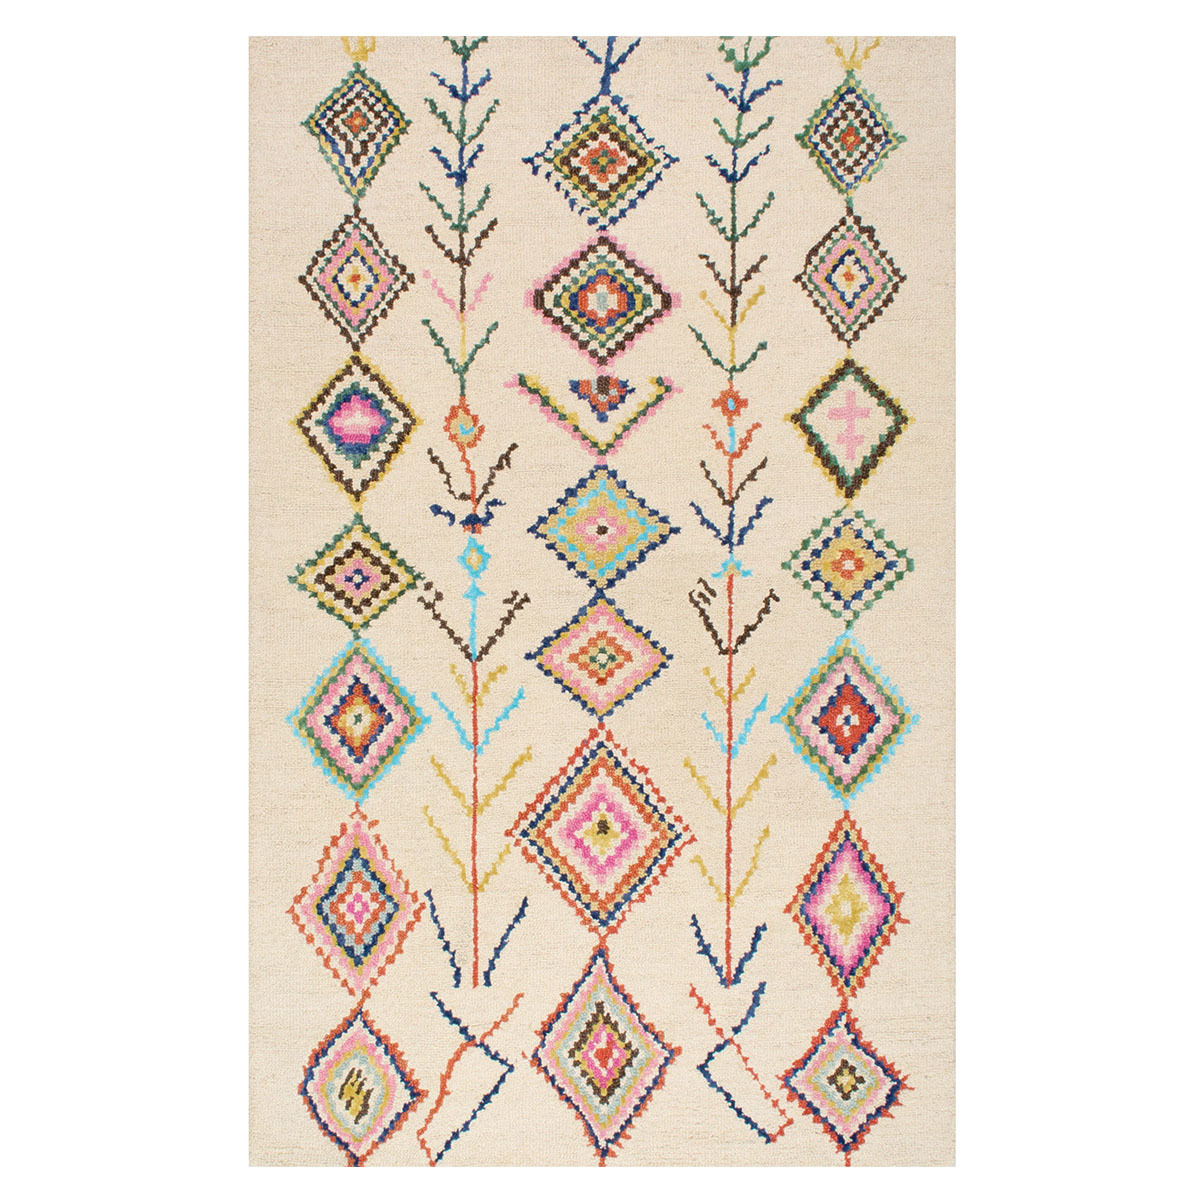 Moroccan-inspired rug with a colorful motif against a cream base. photo